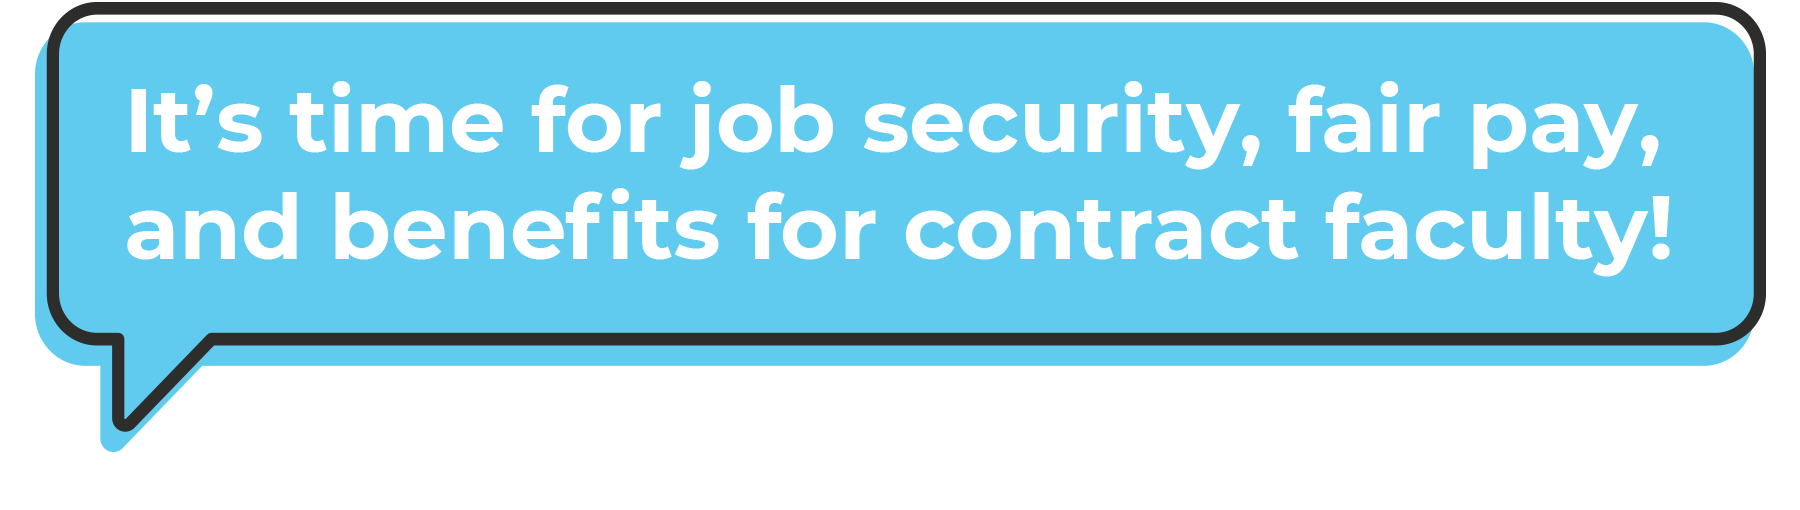 It's time for job security, fair pay, and benefits for contract faculty!